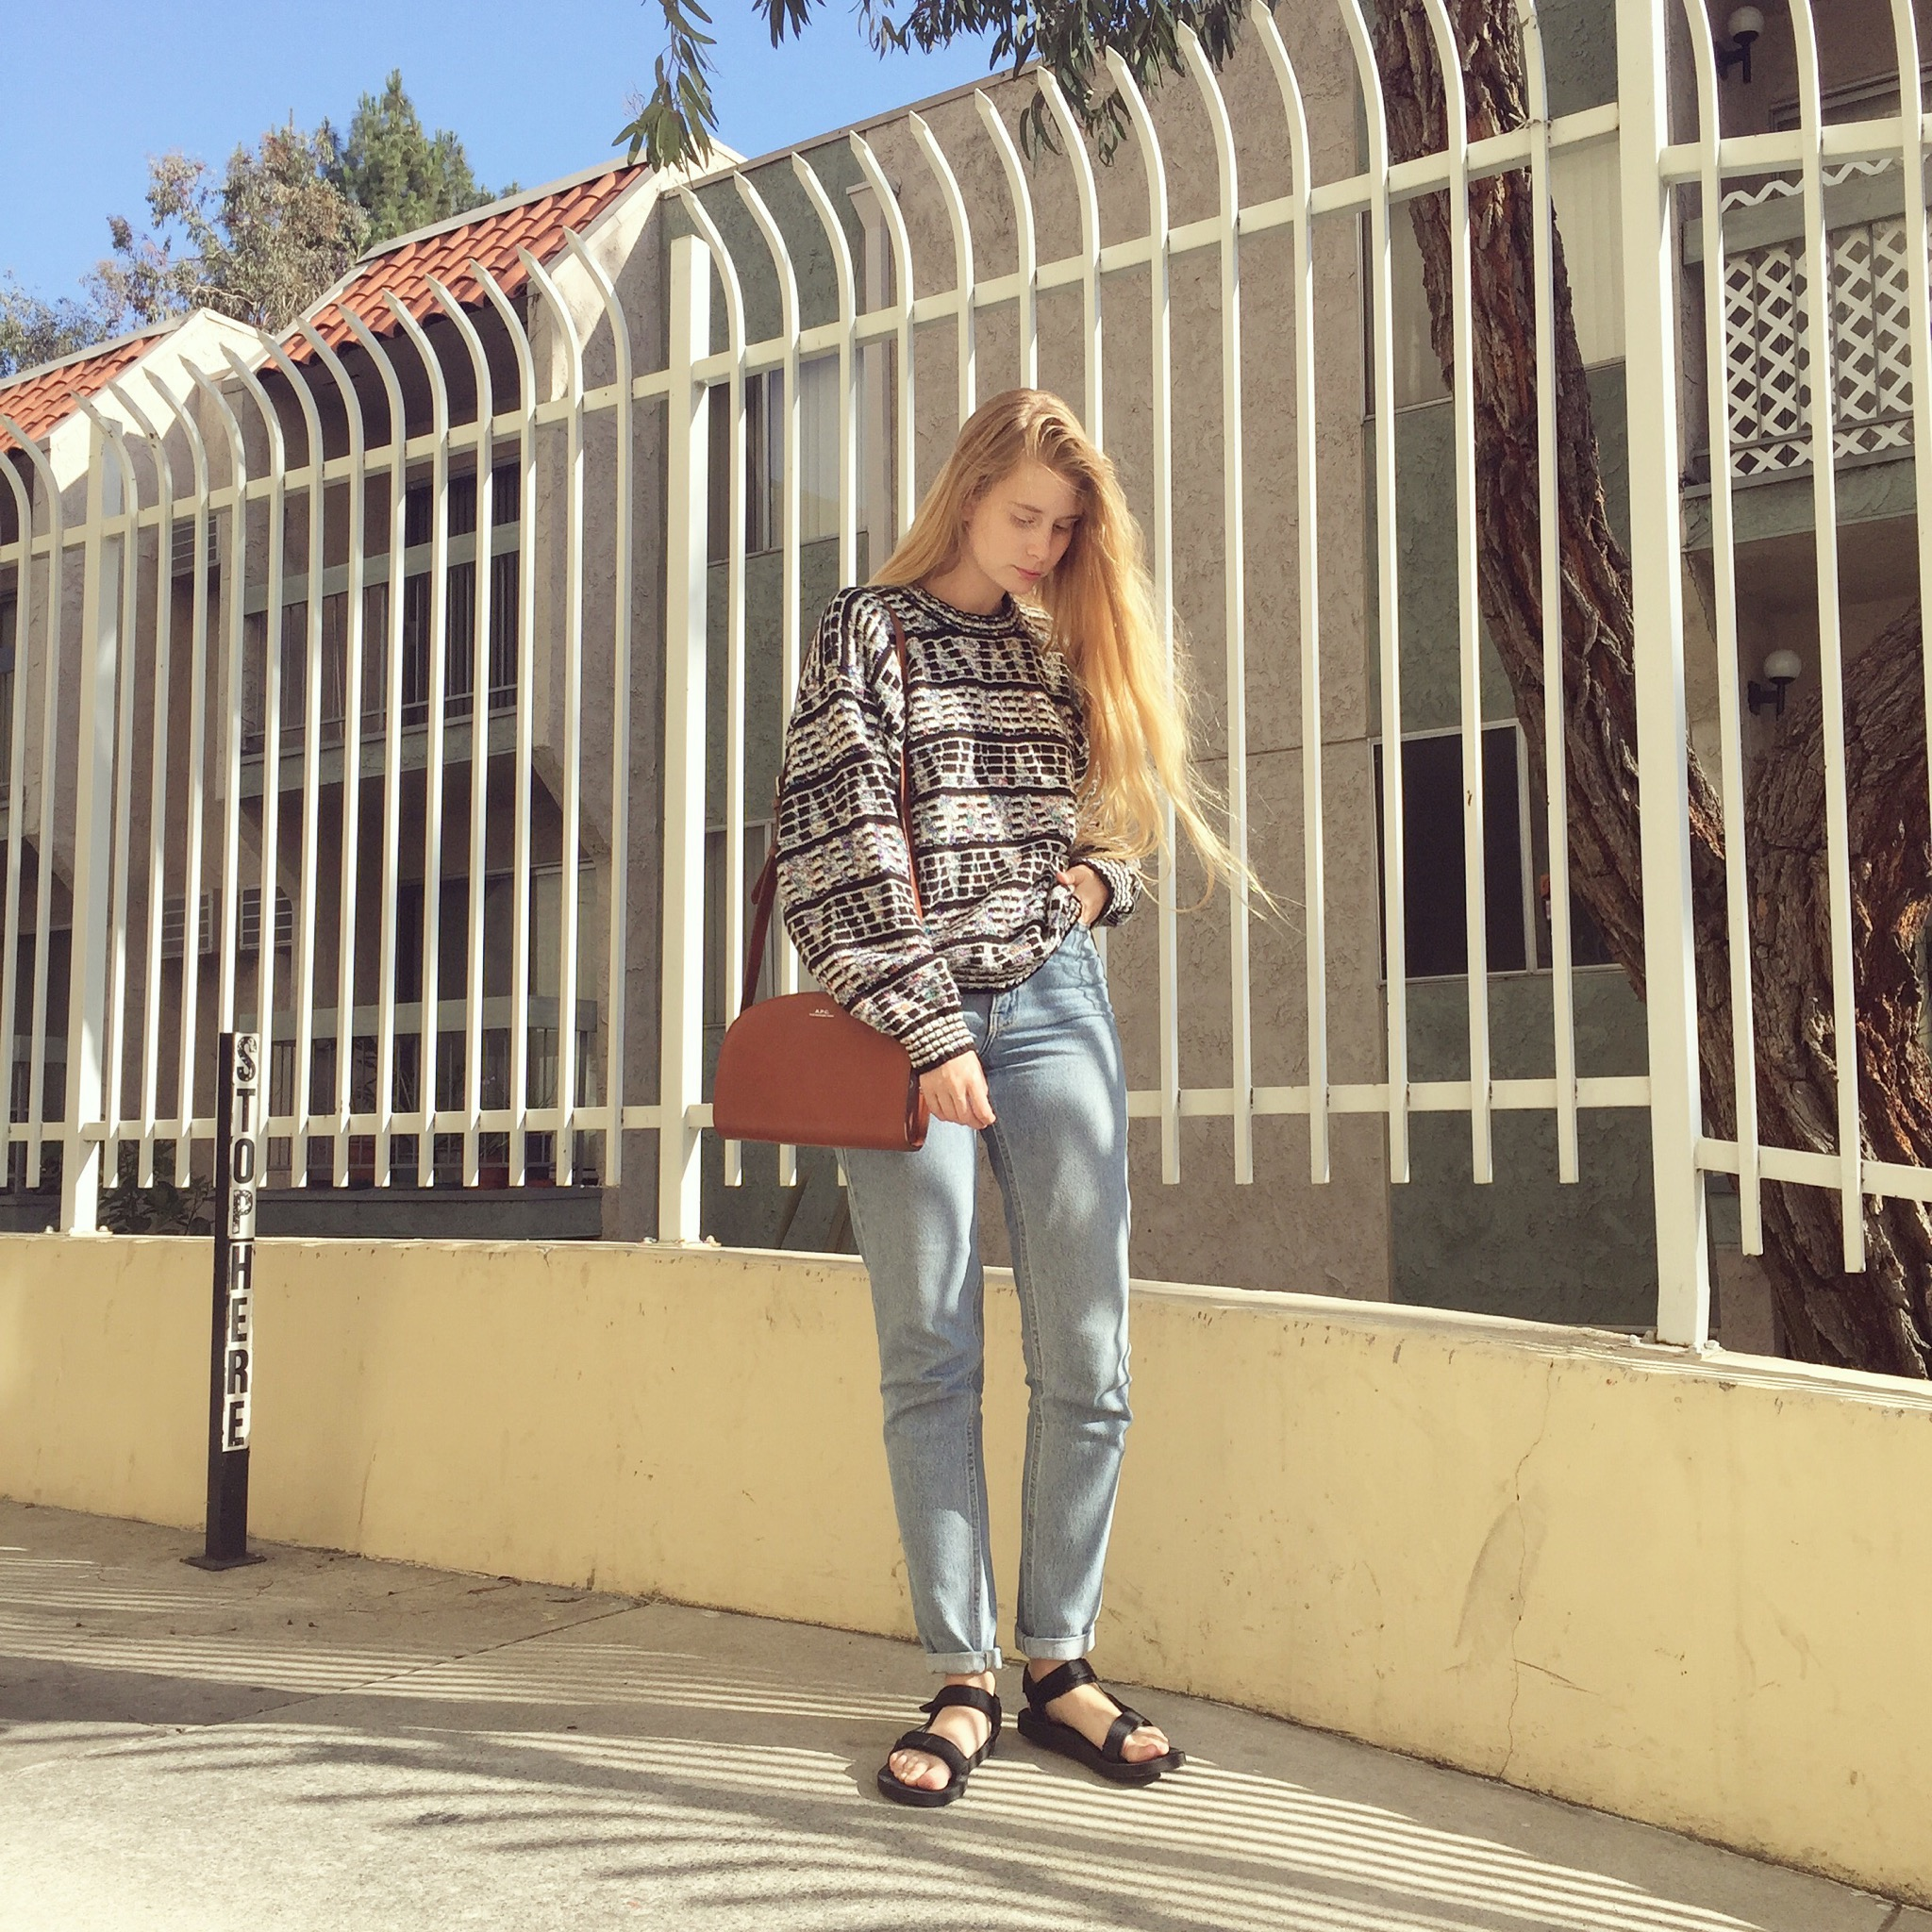 06/13  the weather is still gloomy, at least 6 hours a day is. i found this sweater yesterday and try to look for positive.  only in california you can wear wool sweater and sandals, enjoy.  sweater vintage - jeans american apparel - sandals teva - purse a.p.c.